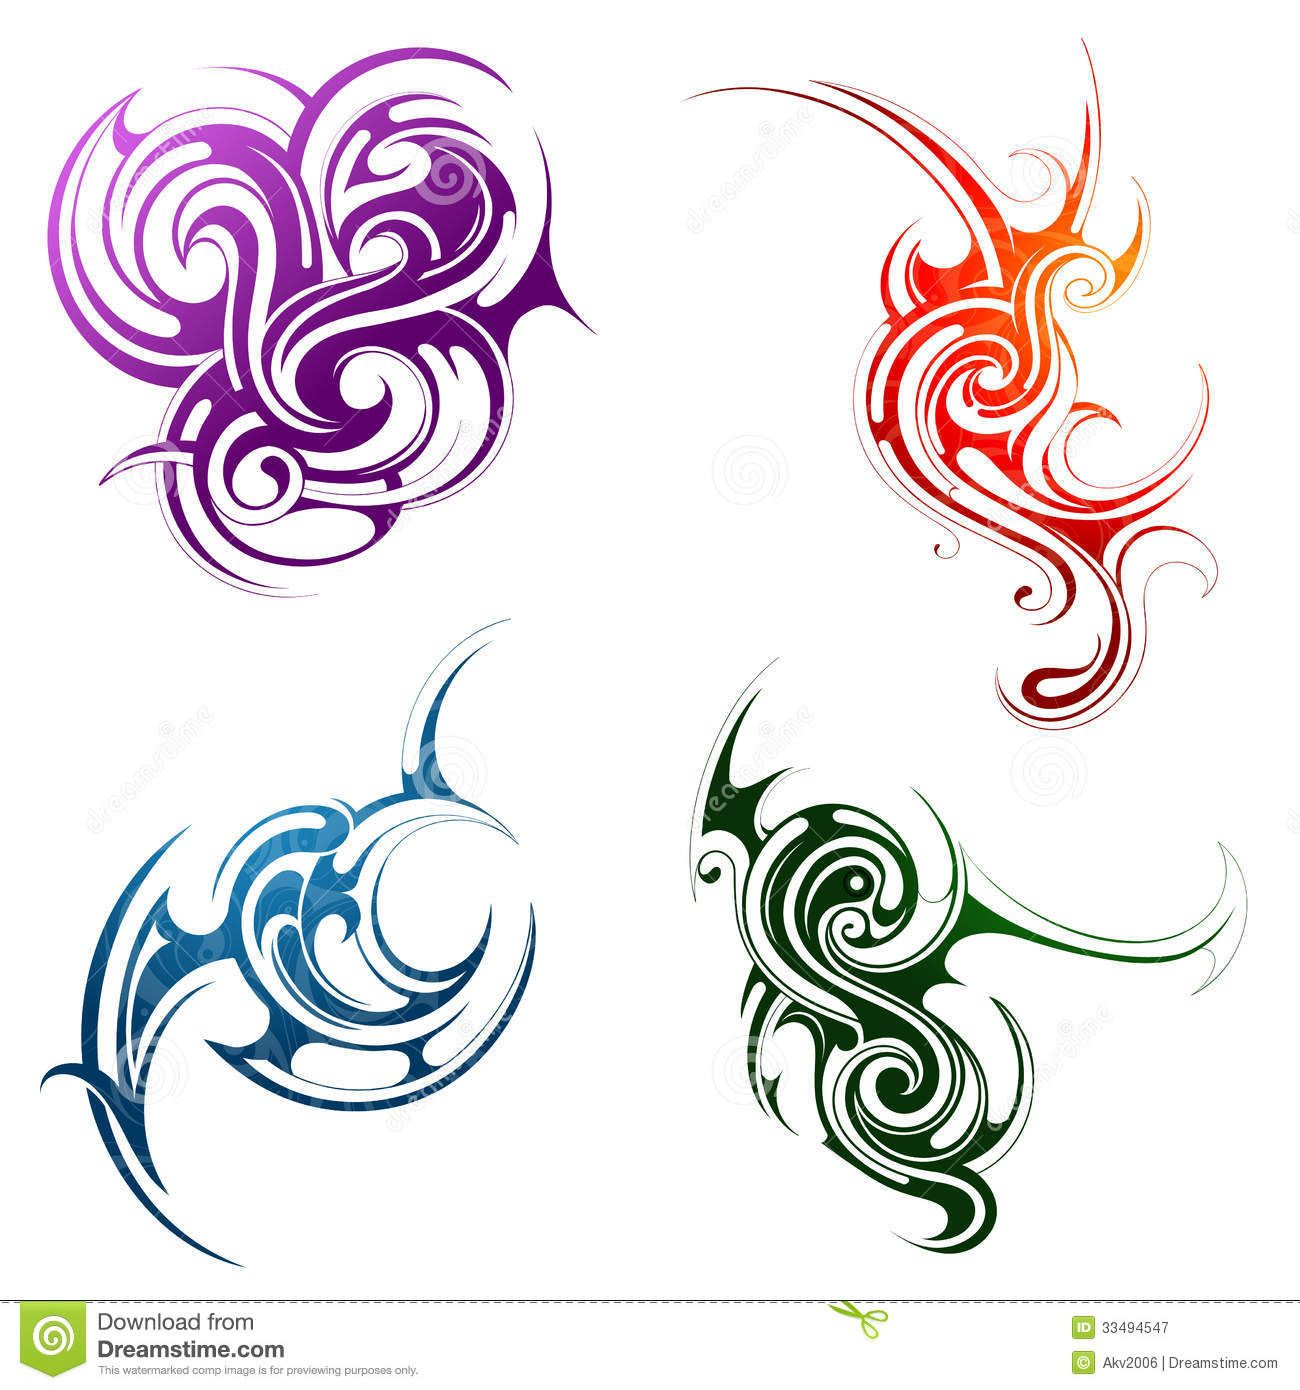 Tribal Earth Wind And Fire Designs Google Search Tribal Tattoos Water Tattoo Tribal Tattoo Designs